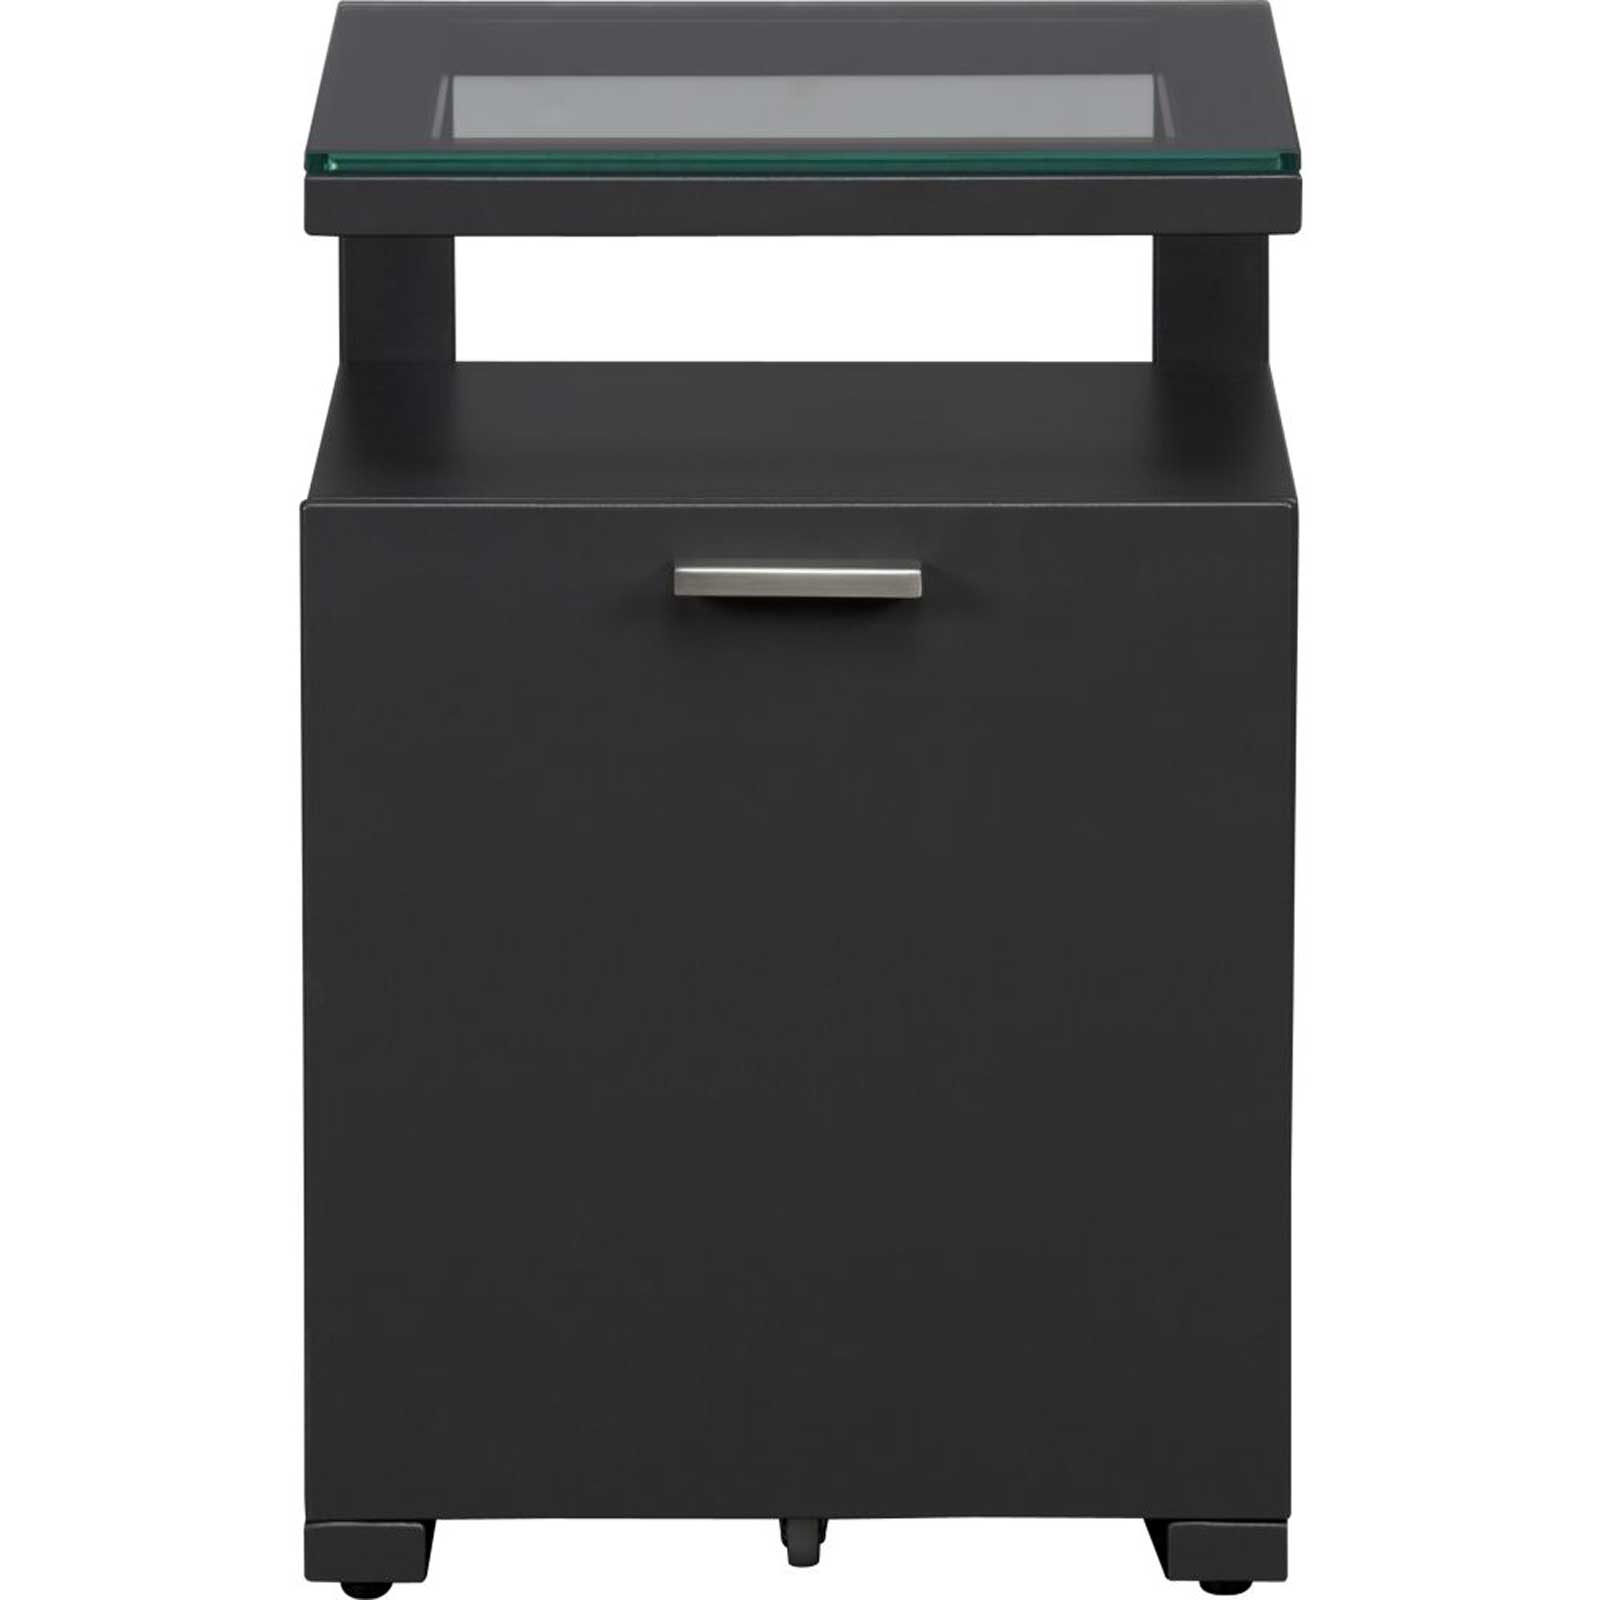 Black metal lateral document cabinet cantilevers with glass top